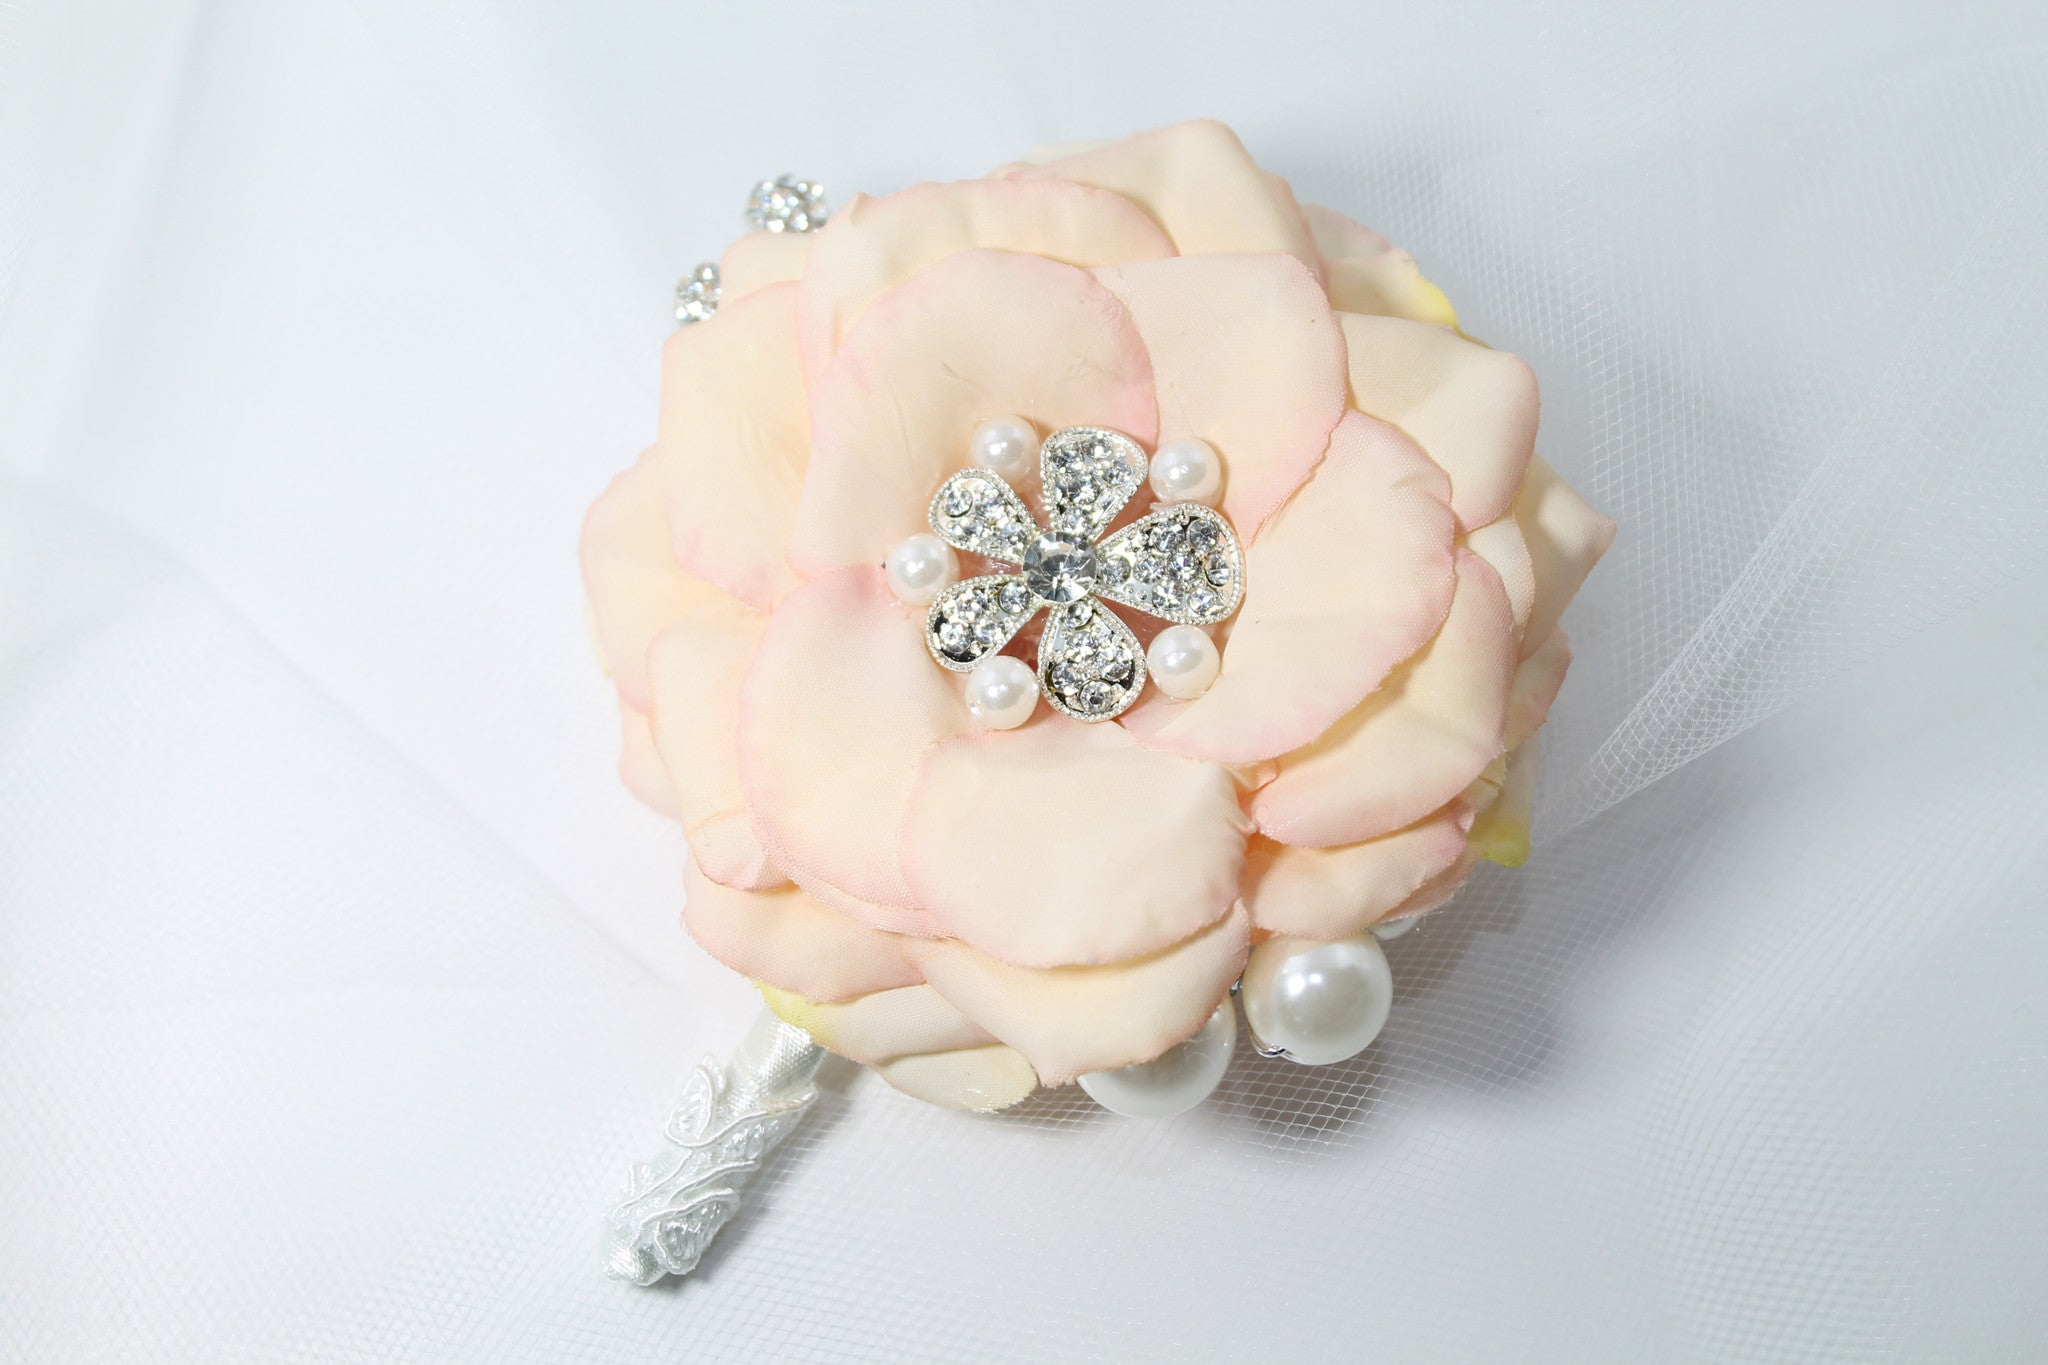 Brooch Bouquet Handmade Fabric Flowers Faux Pearls - Bride Glamor